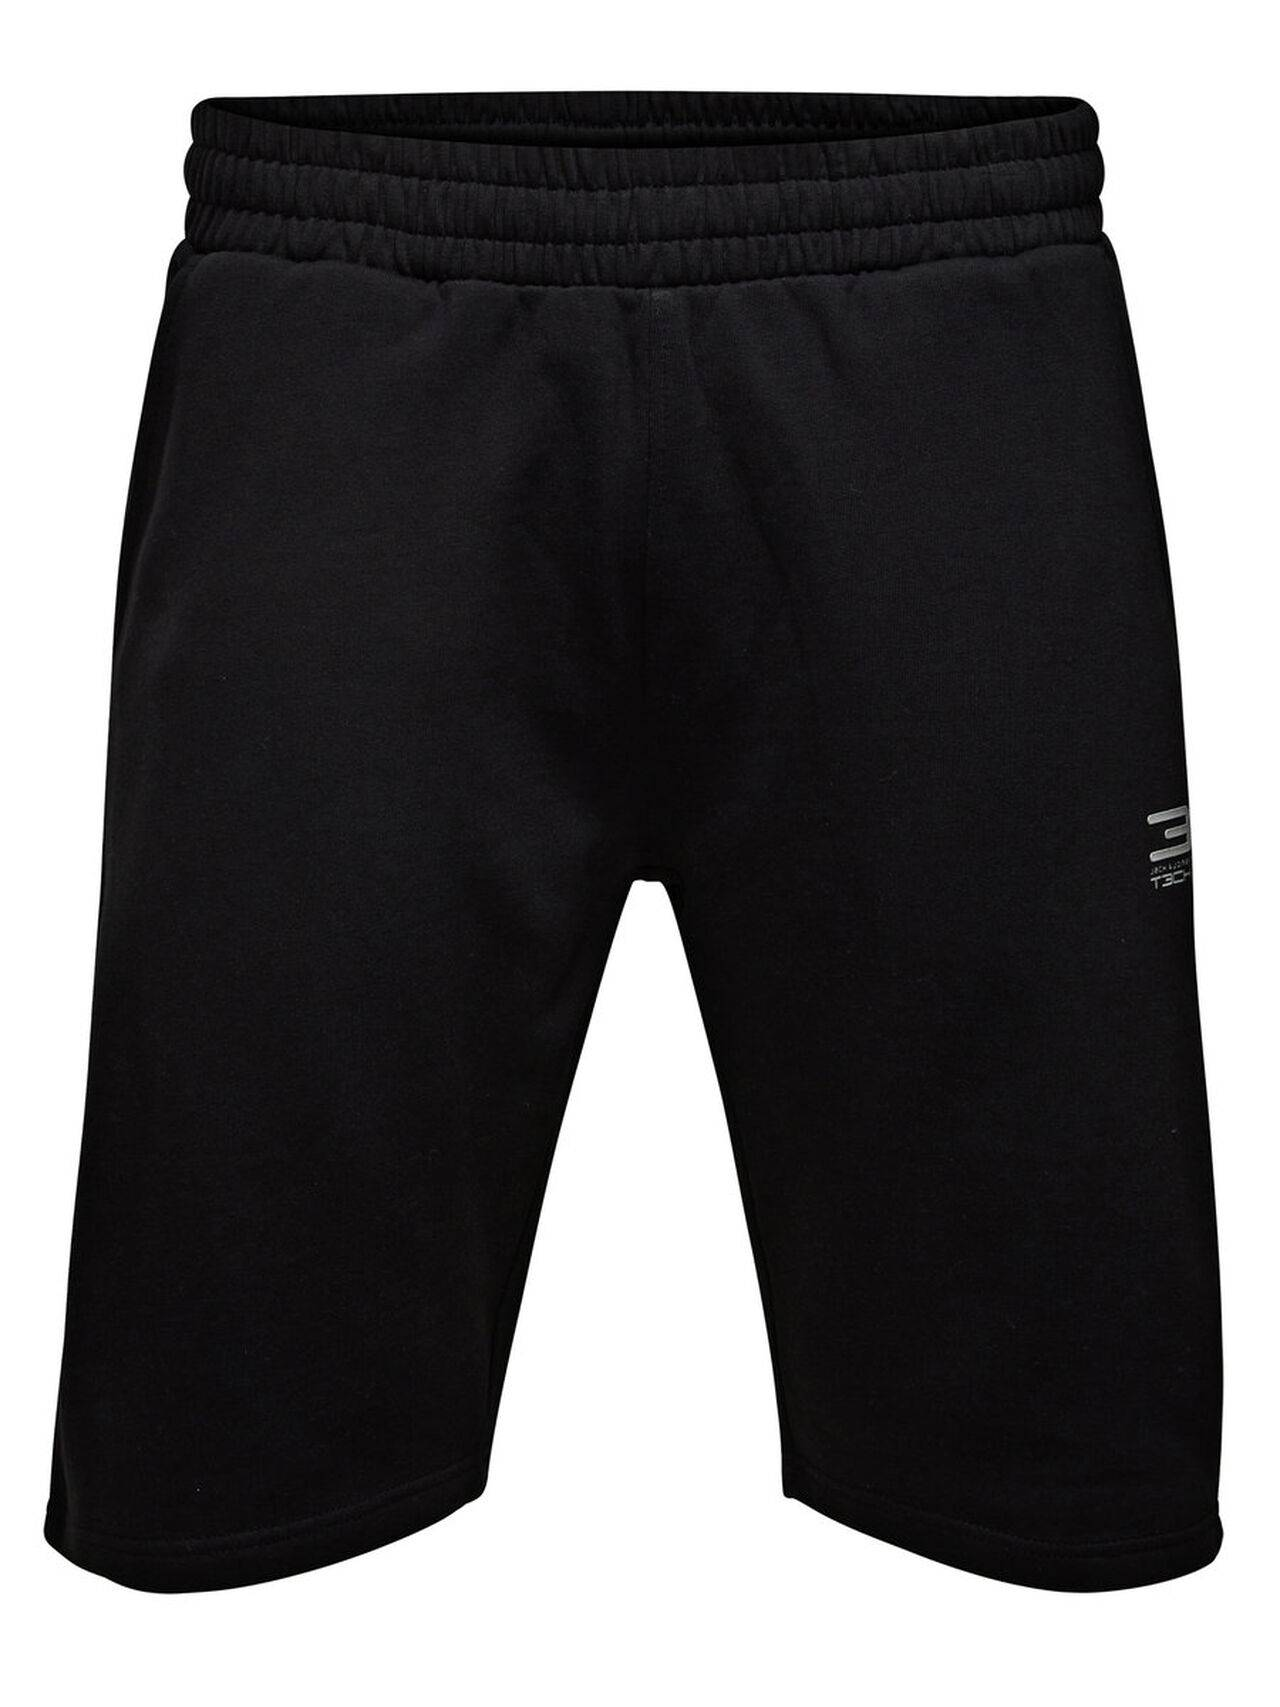 JACK & JONES Sports Sweat Shorts Men Black Black